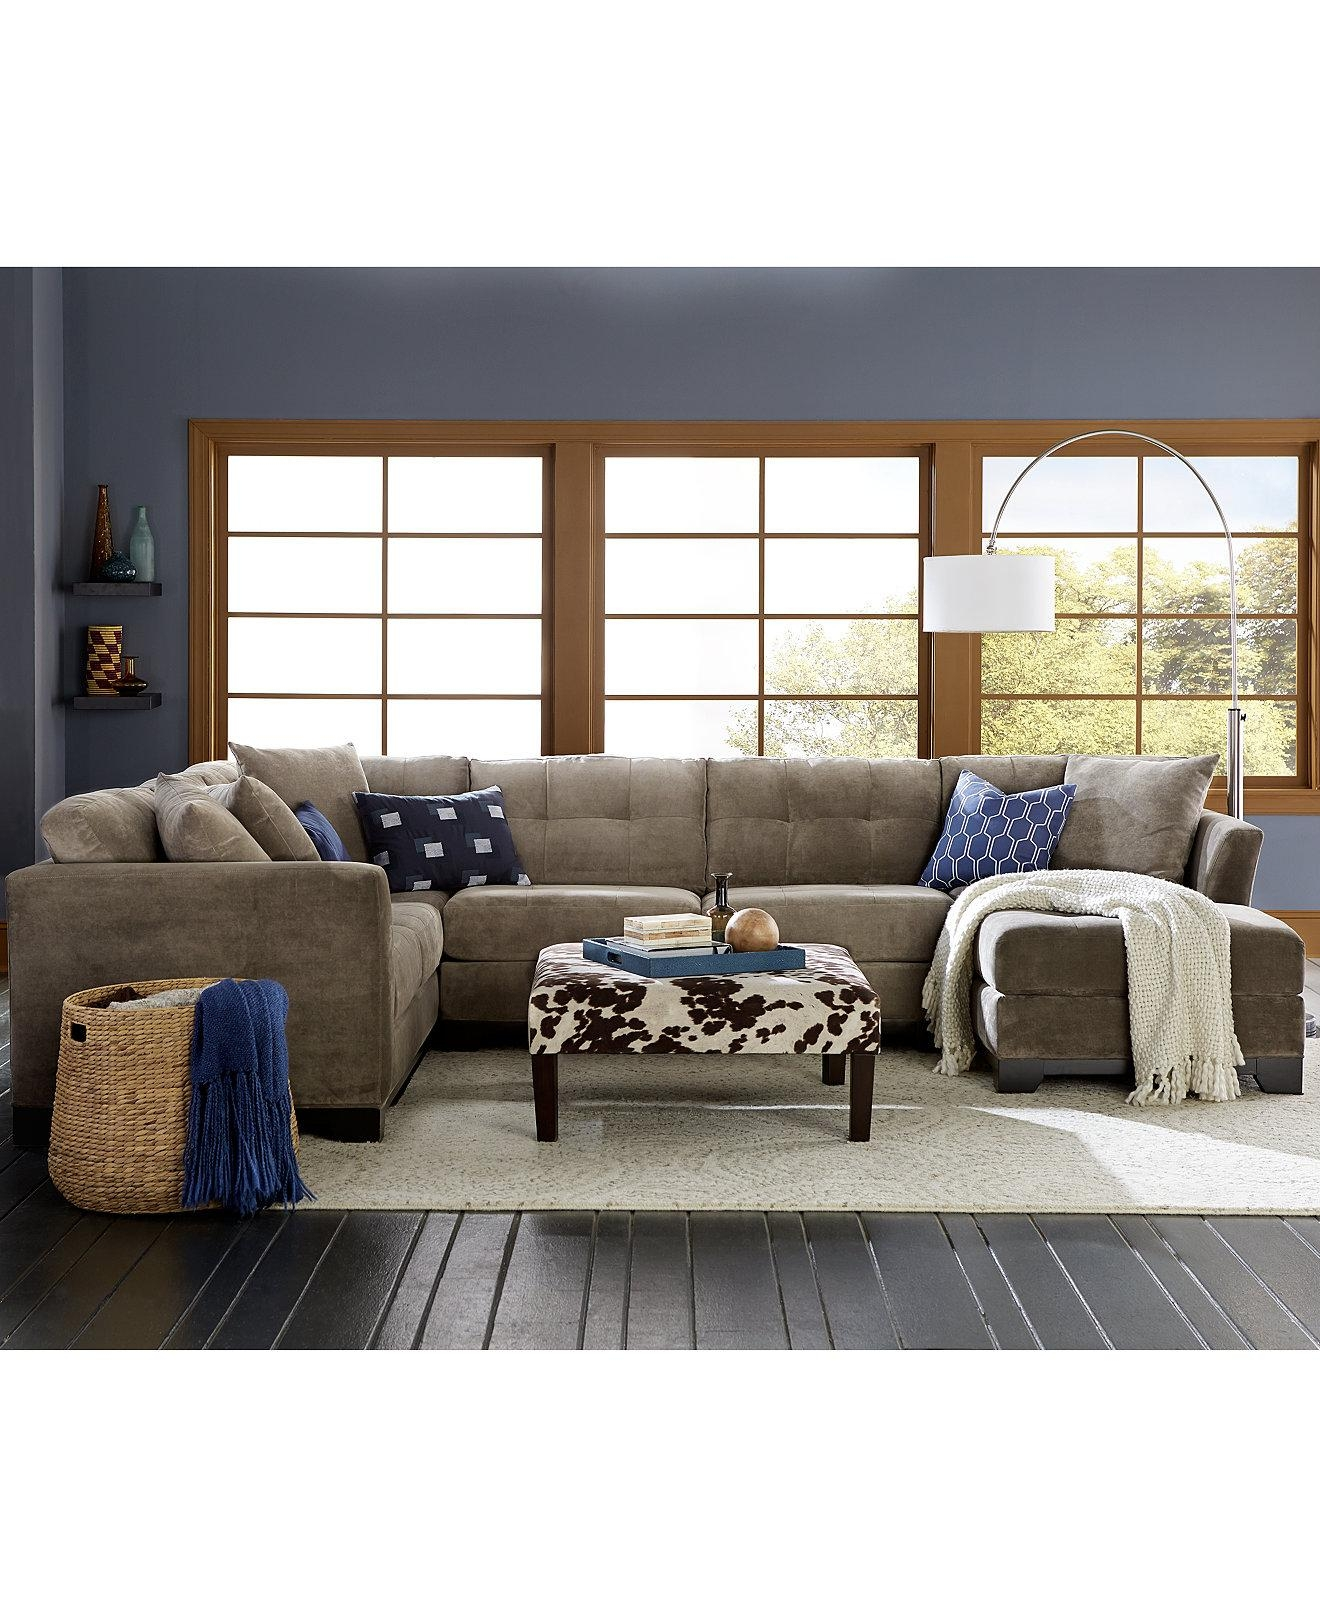 Furniture: Using Outstanding Sectional Sofas Mn For Chic Home In Craigslist Sectional Sofas (Image 11 of 20)